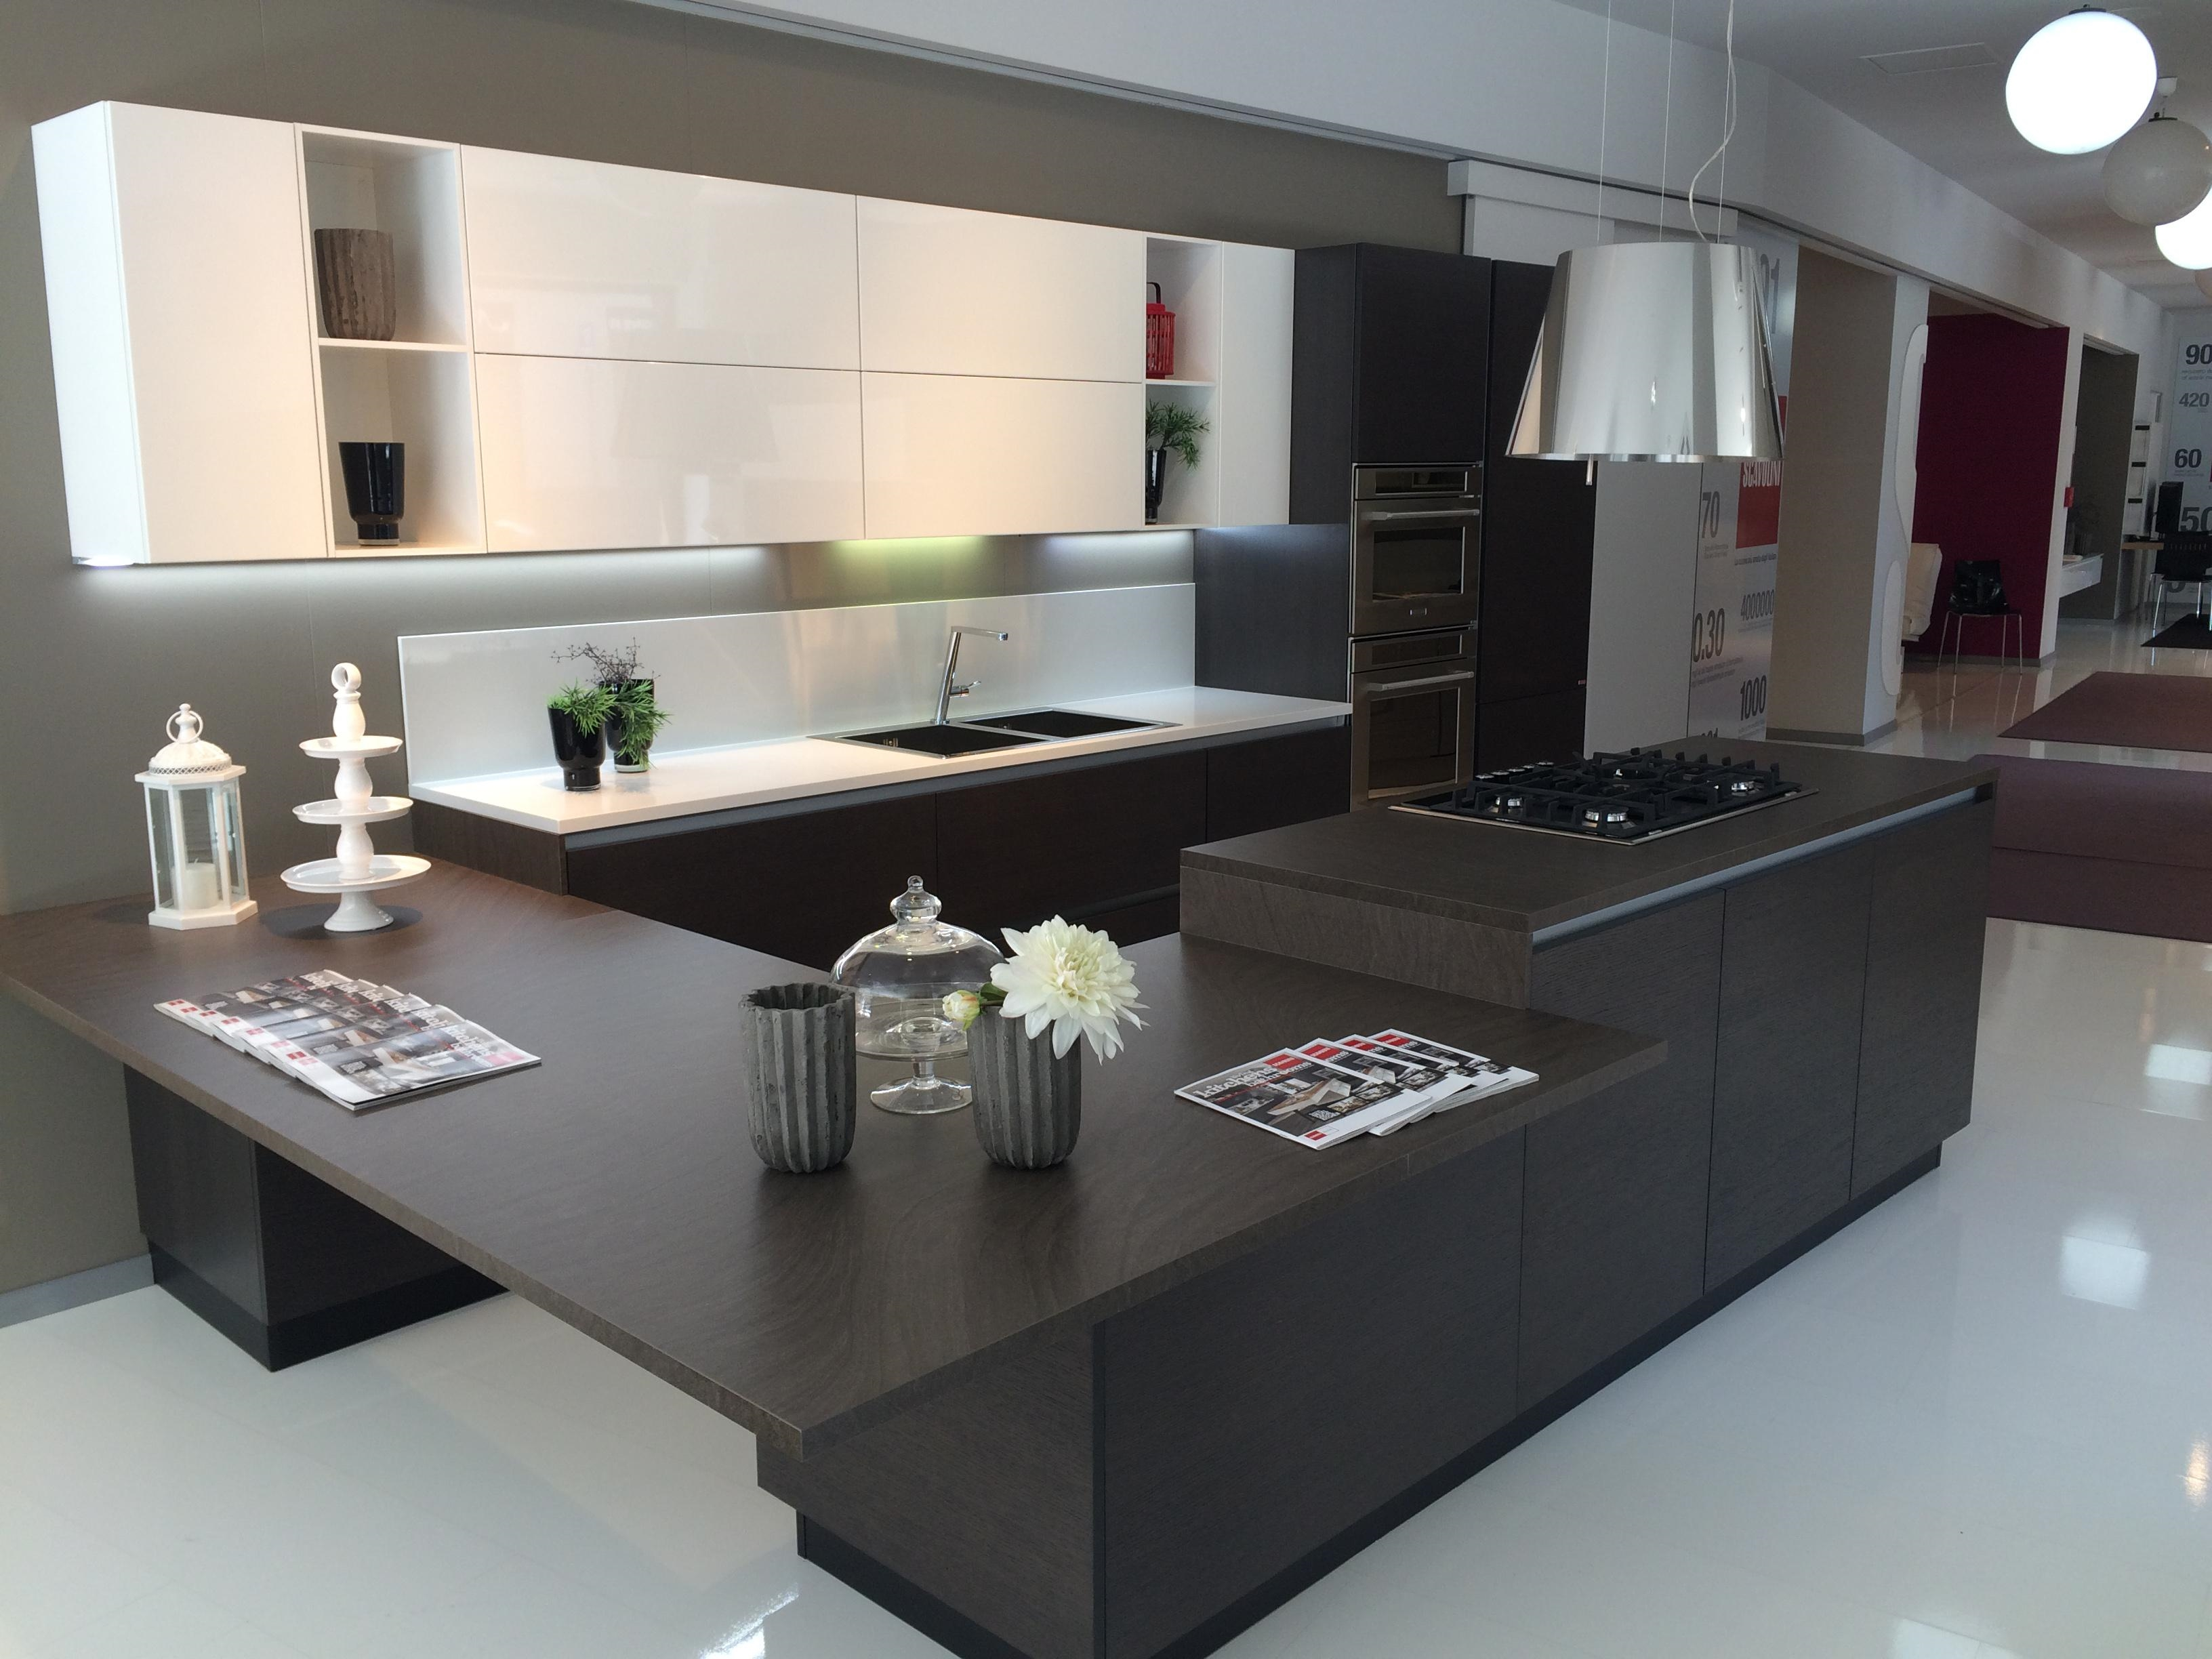 Cucine Moderne Con Isola Scavolini - Home Design E Interior Ideas ...